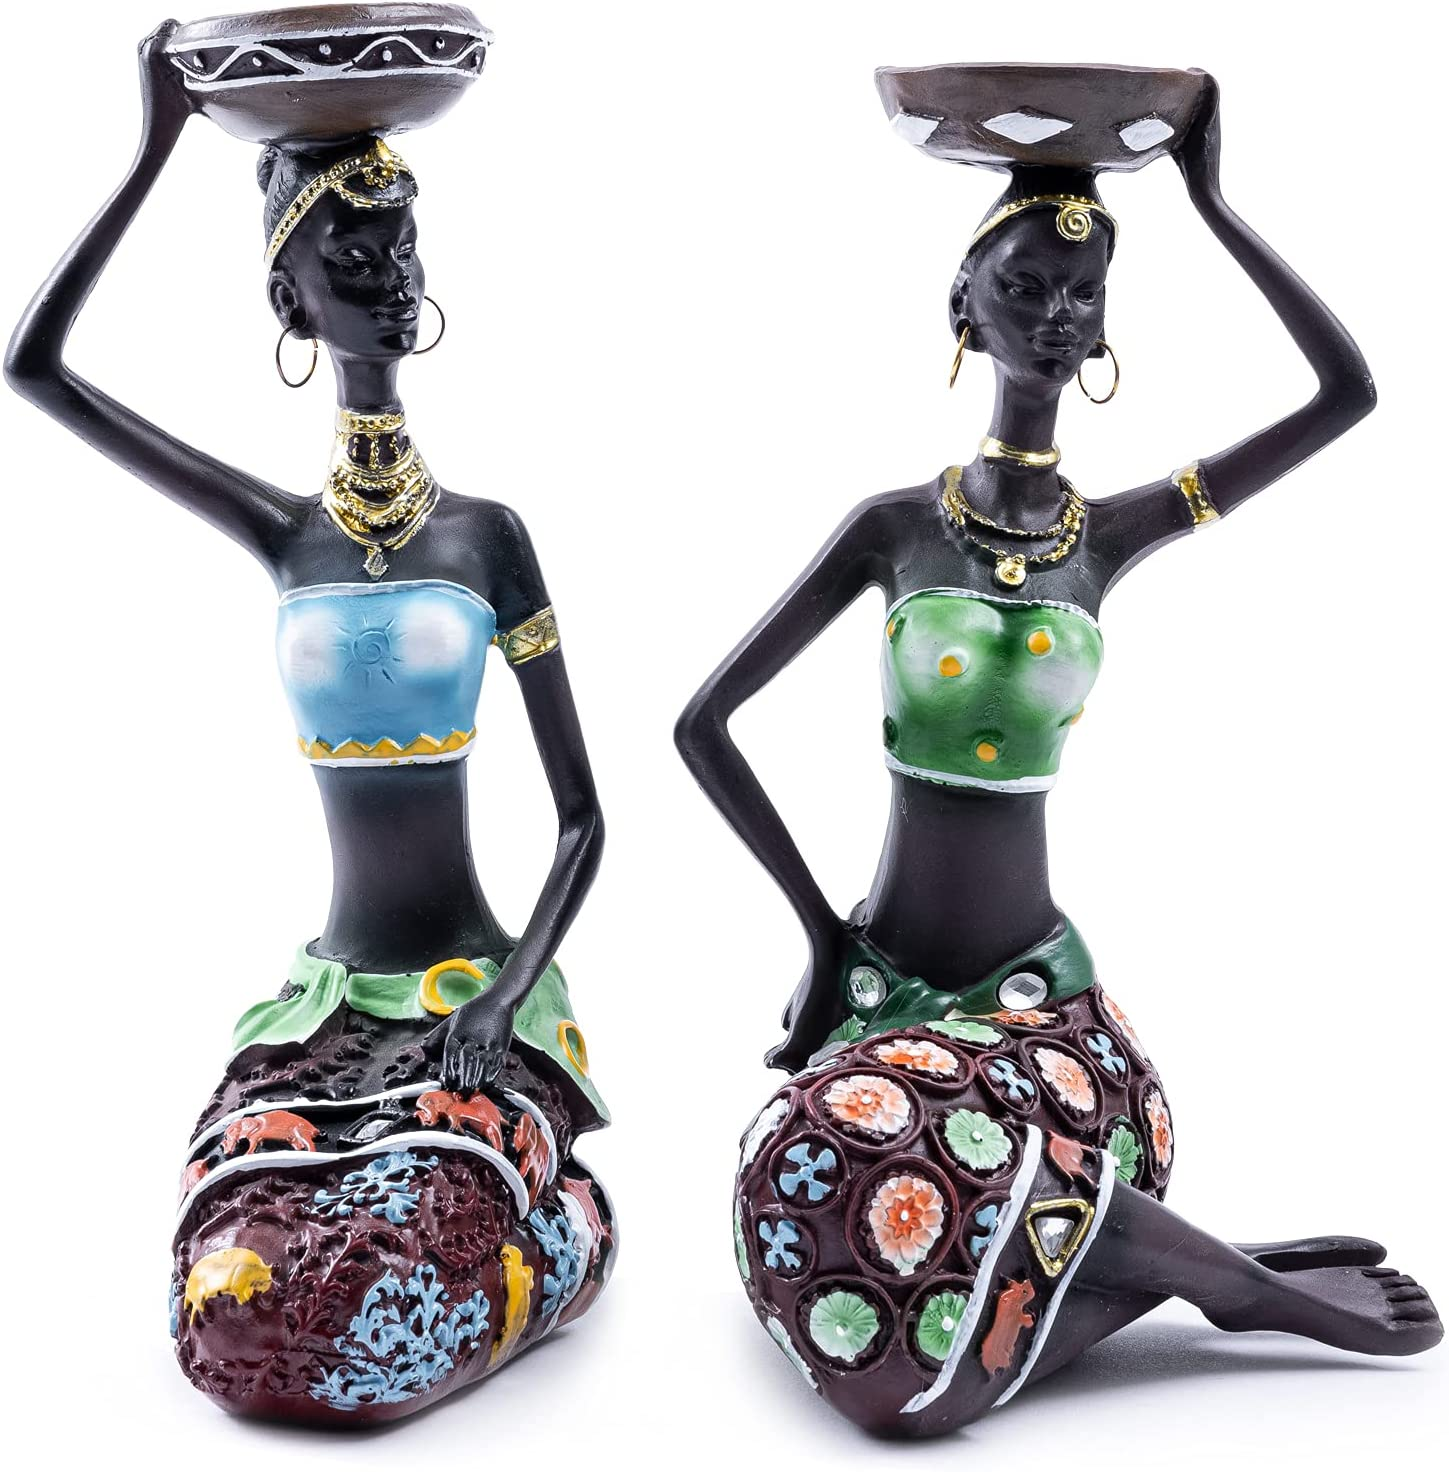 Galiyen African Figurines Statues Sculptures Women Candle Holder Figure Decorations Home Art Decor Centerpiece for Dining Living Room Table Tribal Vintage American Black Statue